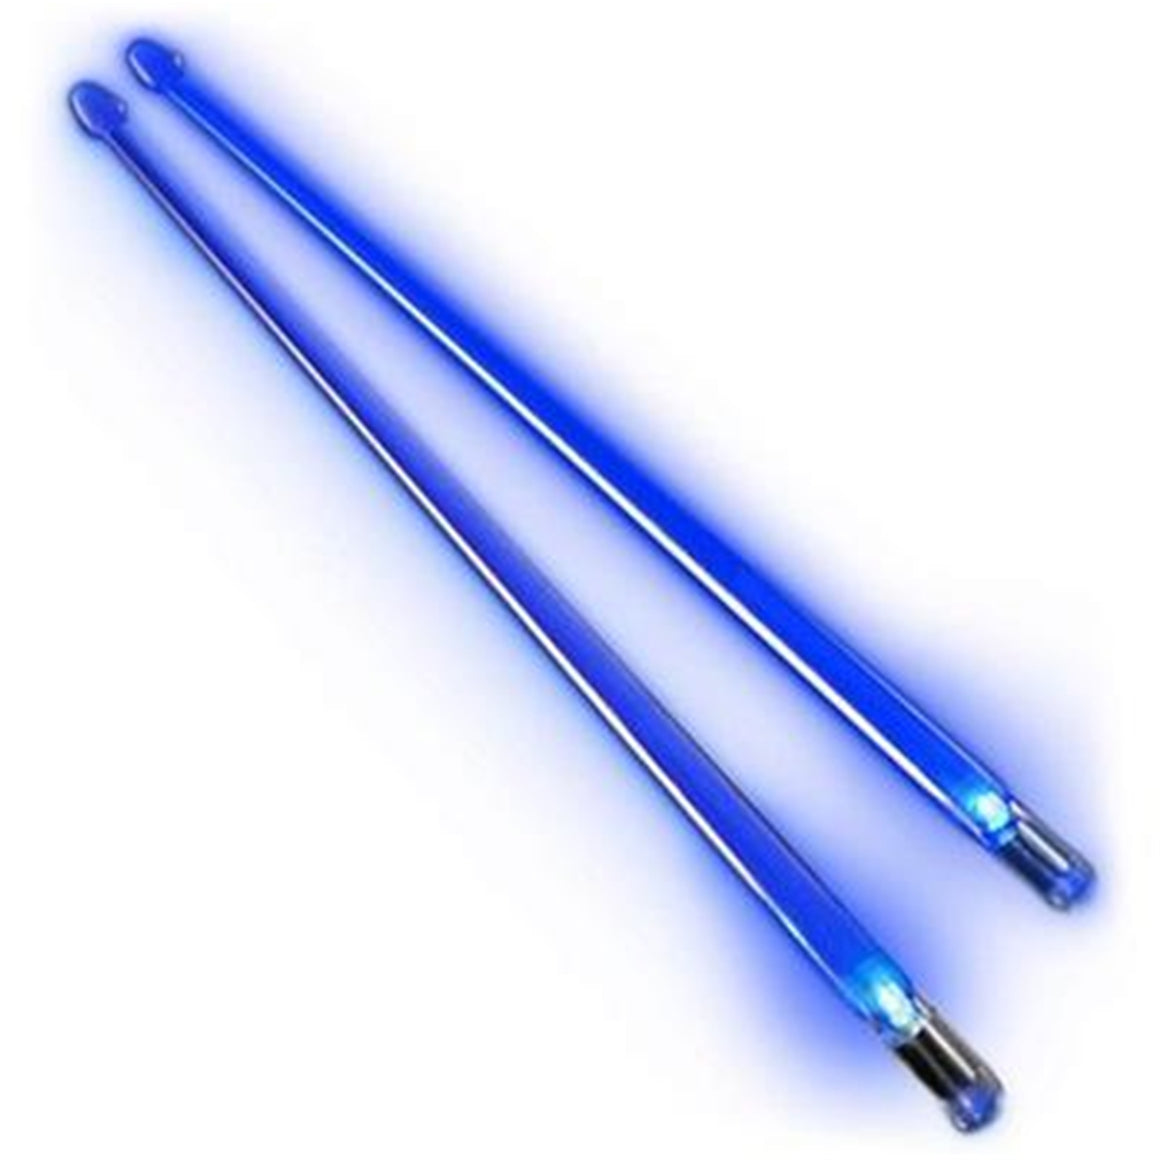 Firestix FX12BL Light-Up Drumsticks, Brilliant Blue